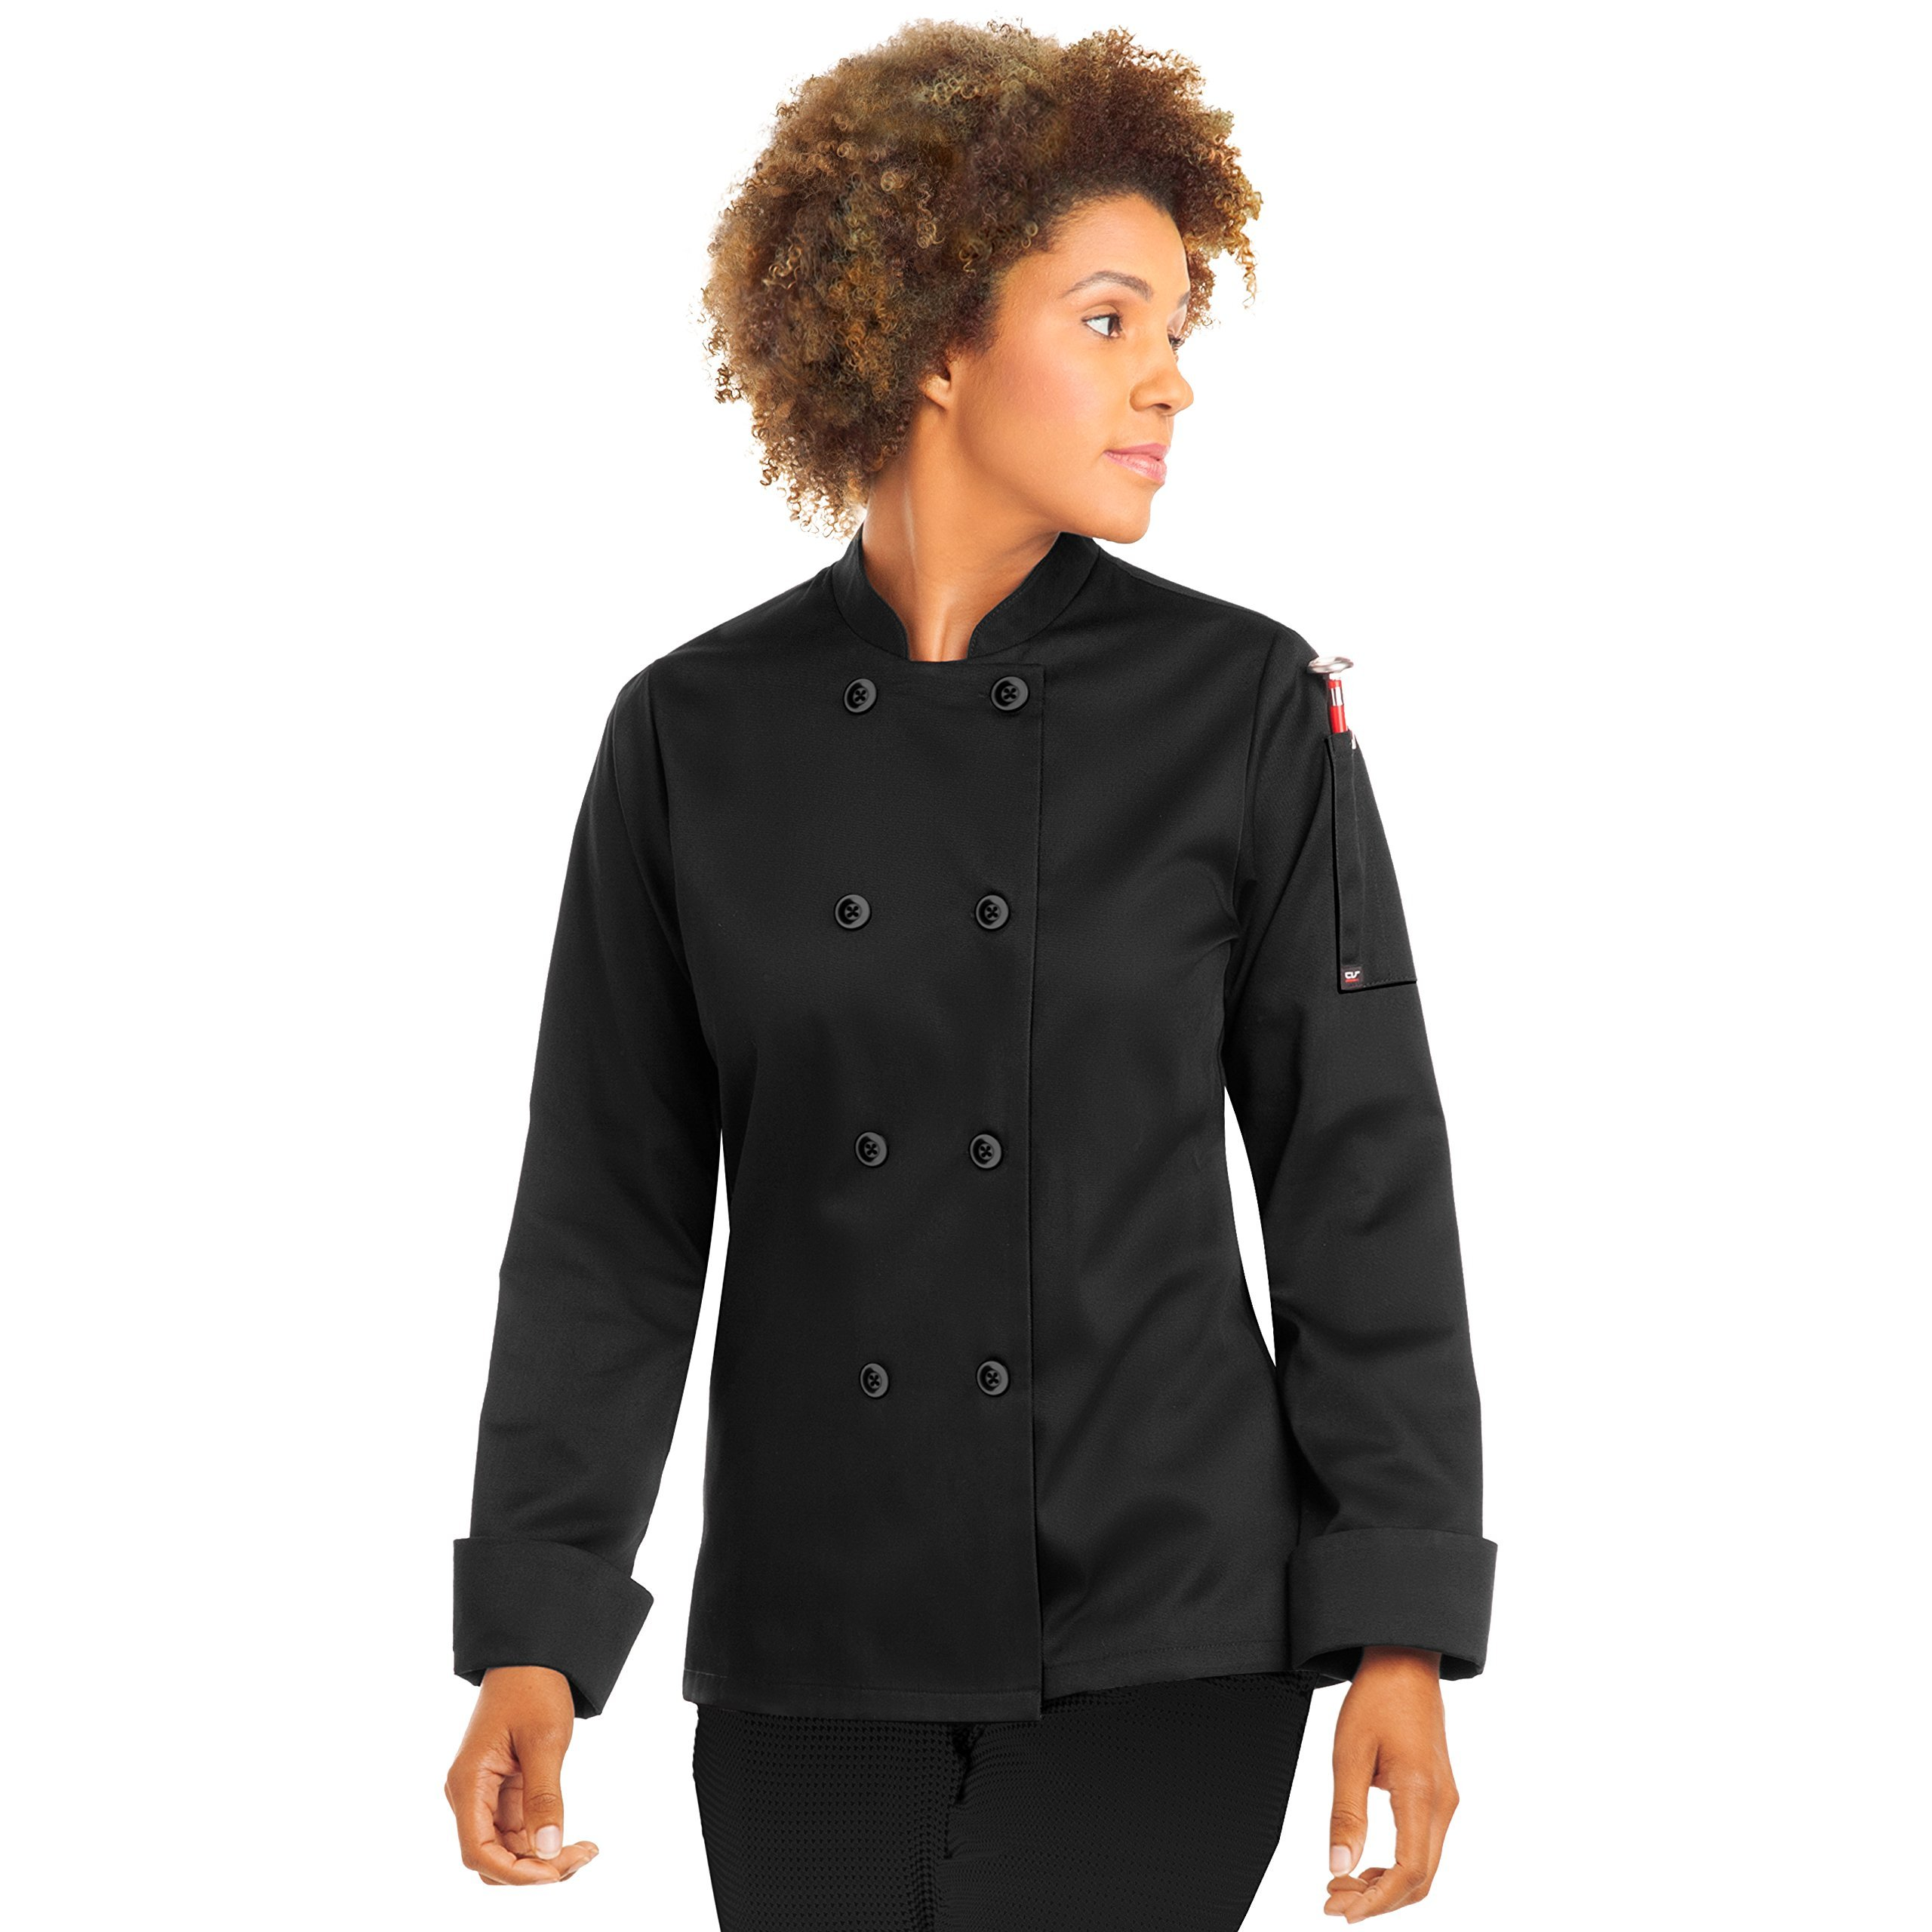 Women's Long Sleeve Chef Coat/Double Breasted/Plastic Button Reversible Front Closure (S-XL, 2 Colors) (Large, Black)